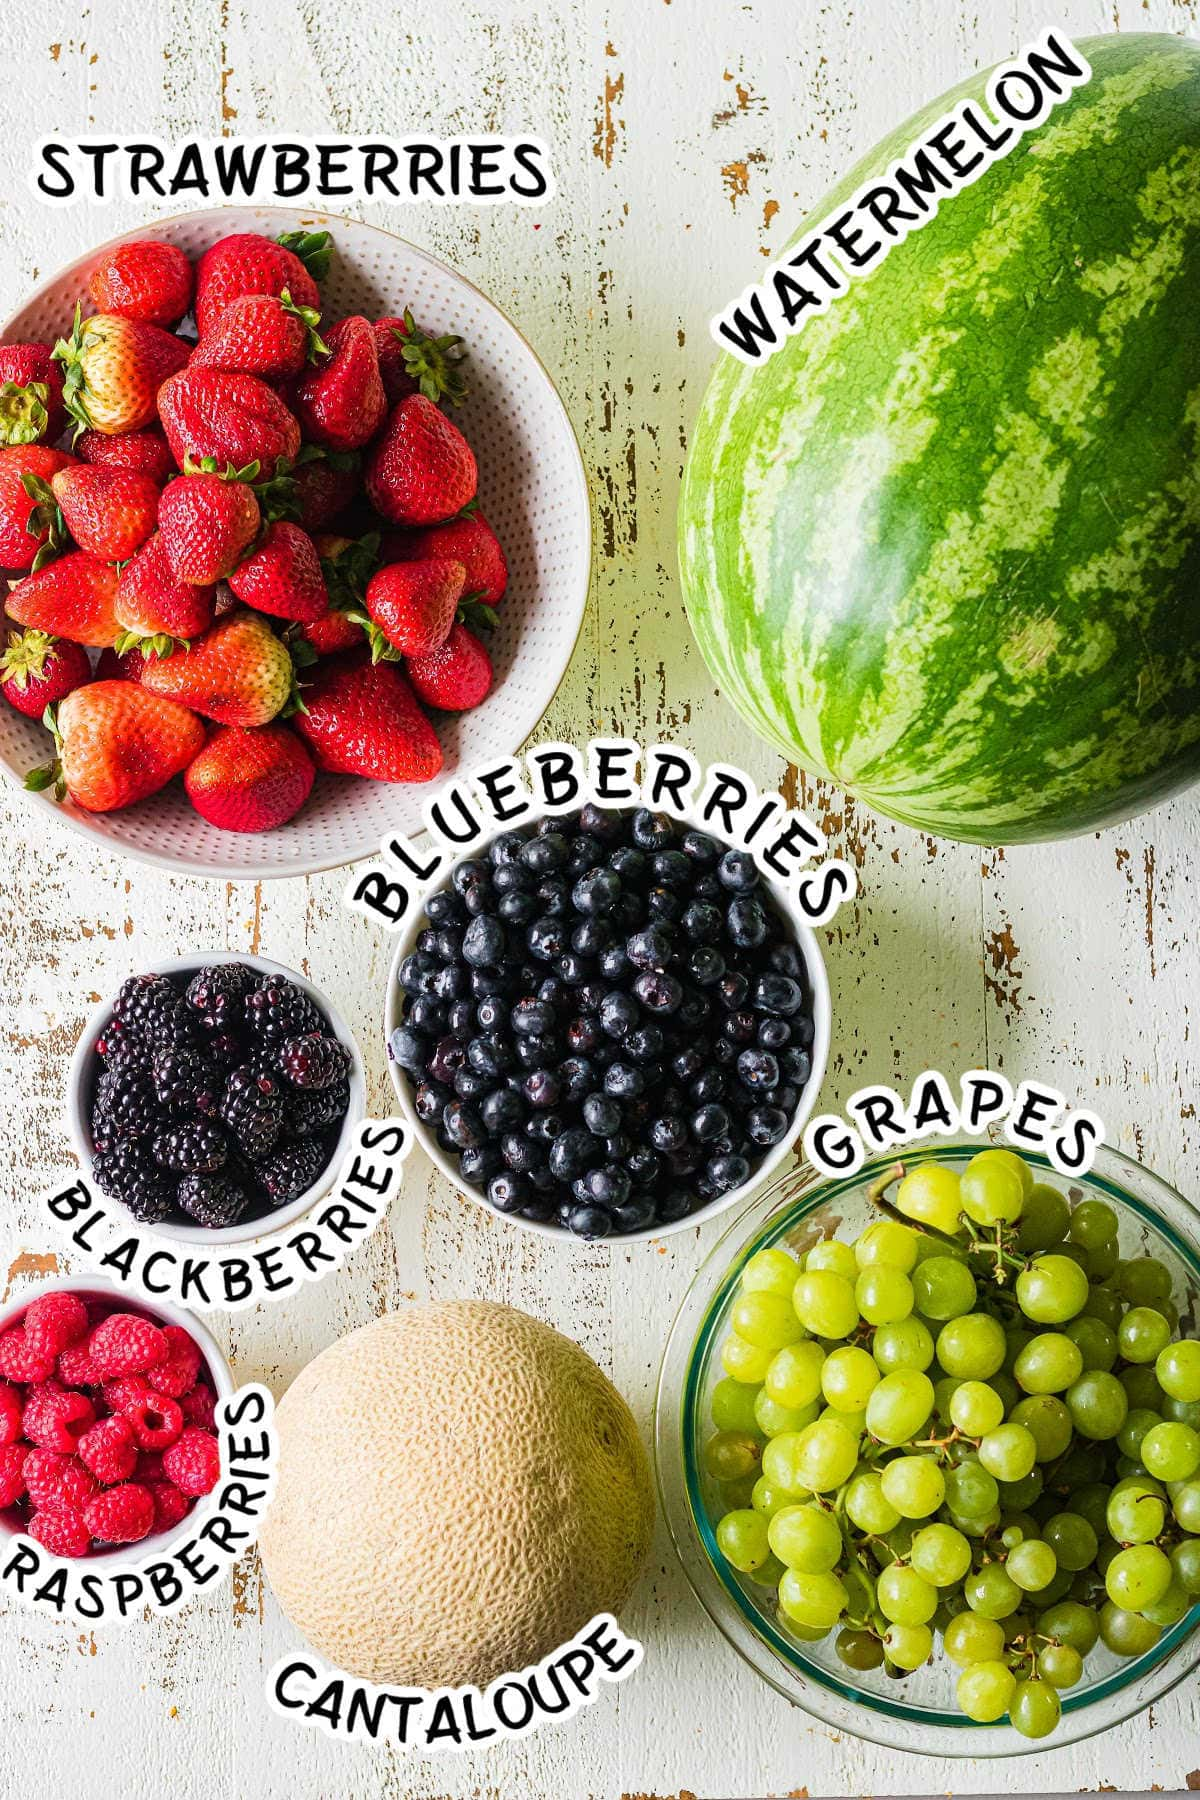 Labeled ingredients for a watermelon basket.